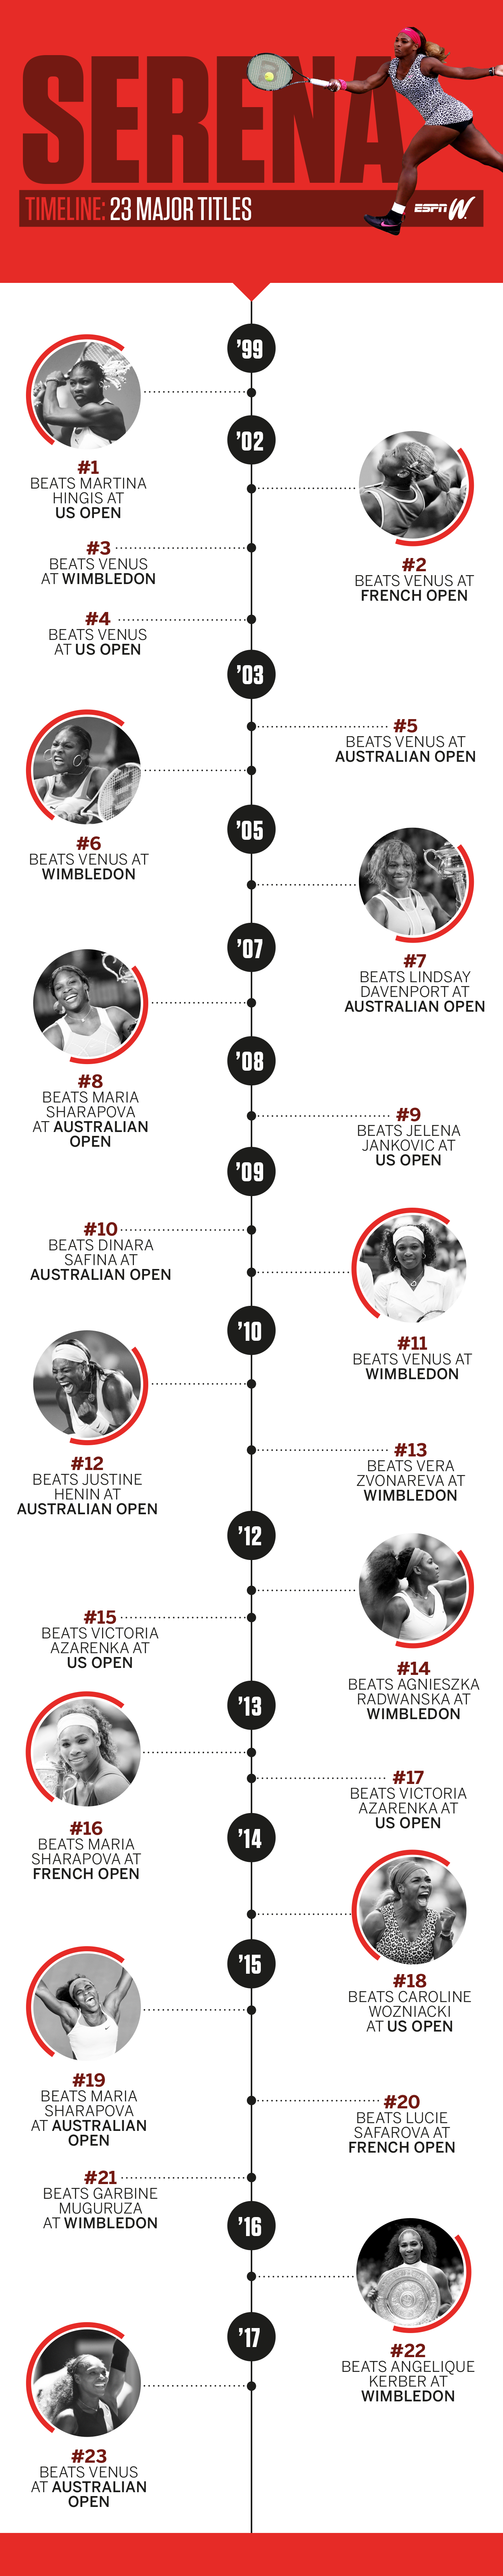 Serena Williams Timeline with 23rd possible title